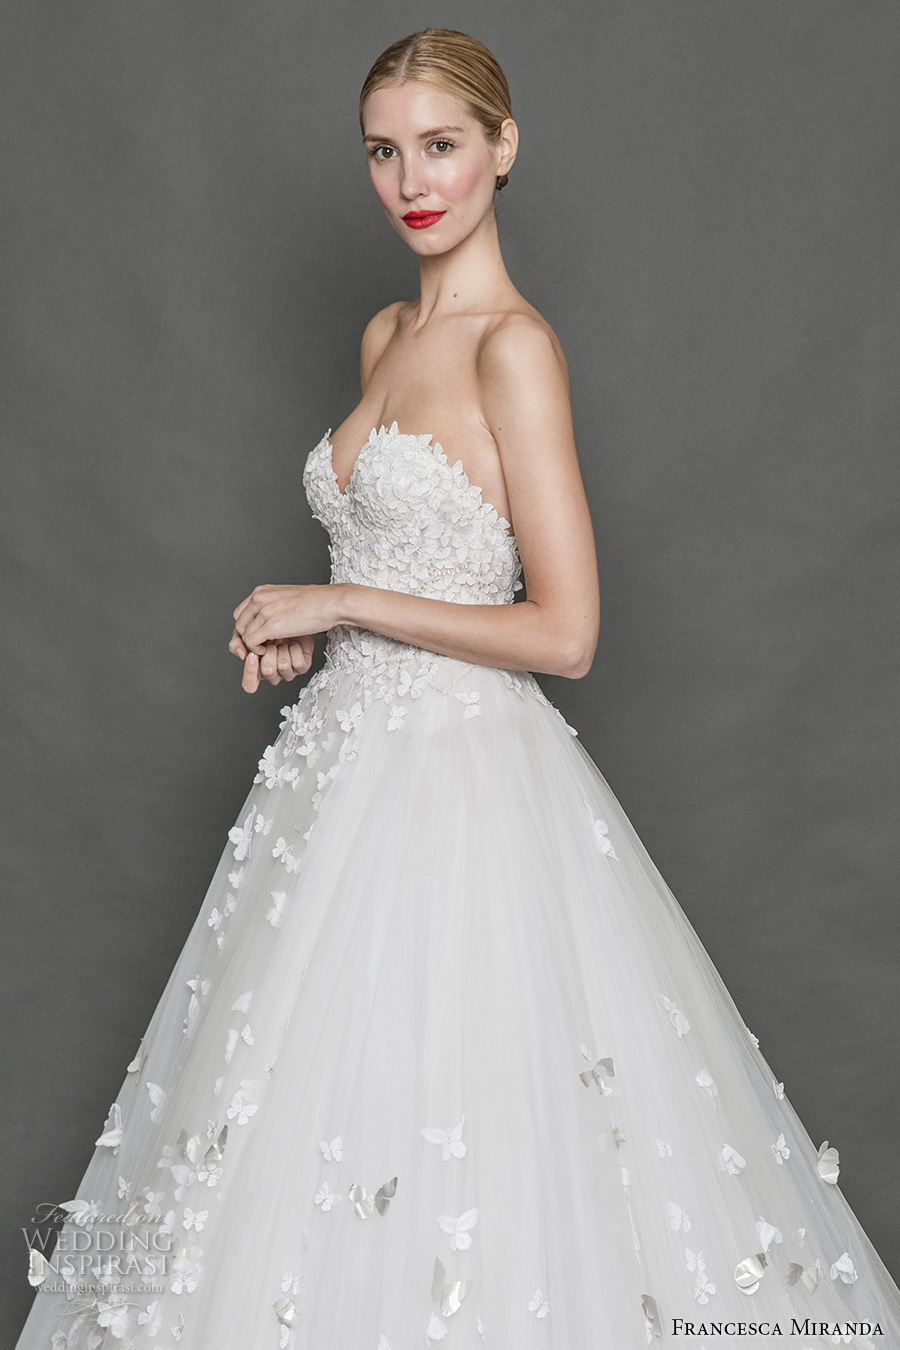 francesca miranda fall 2017 bridal strapless sweetheart neckline busiter heavily embelished bodice romantic princess a line wedding dress open back sweep train (alice) sdv